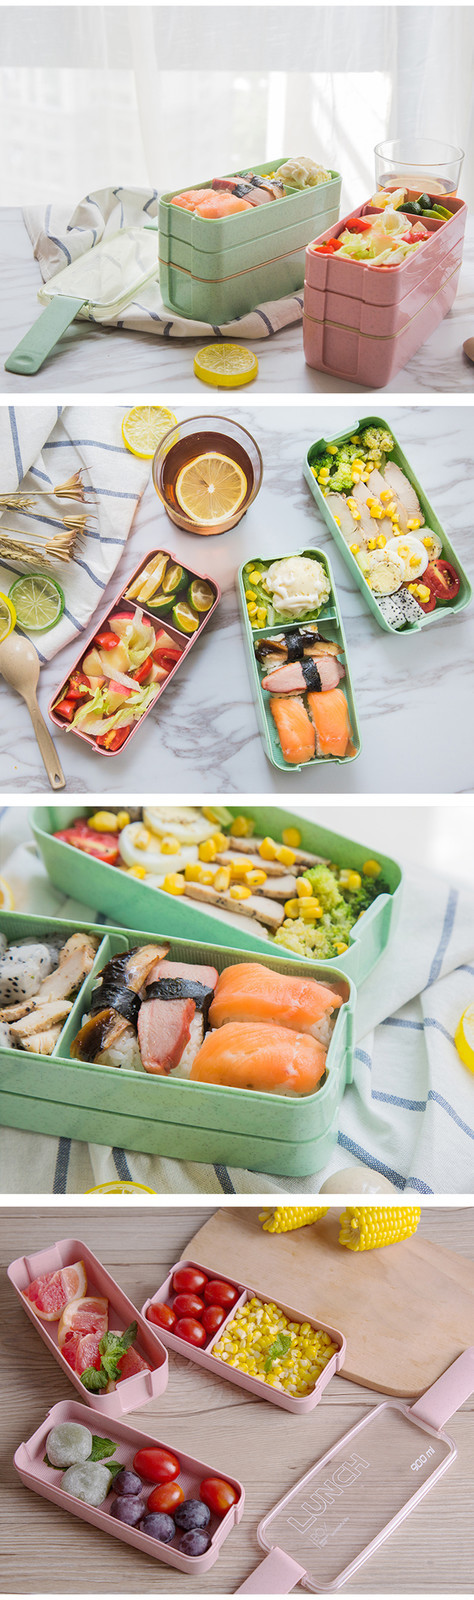 TUUTH 3 Layer 900ml Lunch Box Wheat Straw Fruit Salad Rice Bento Boxe Microwave Food Storage Container for School Office Fitness B7